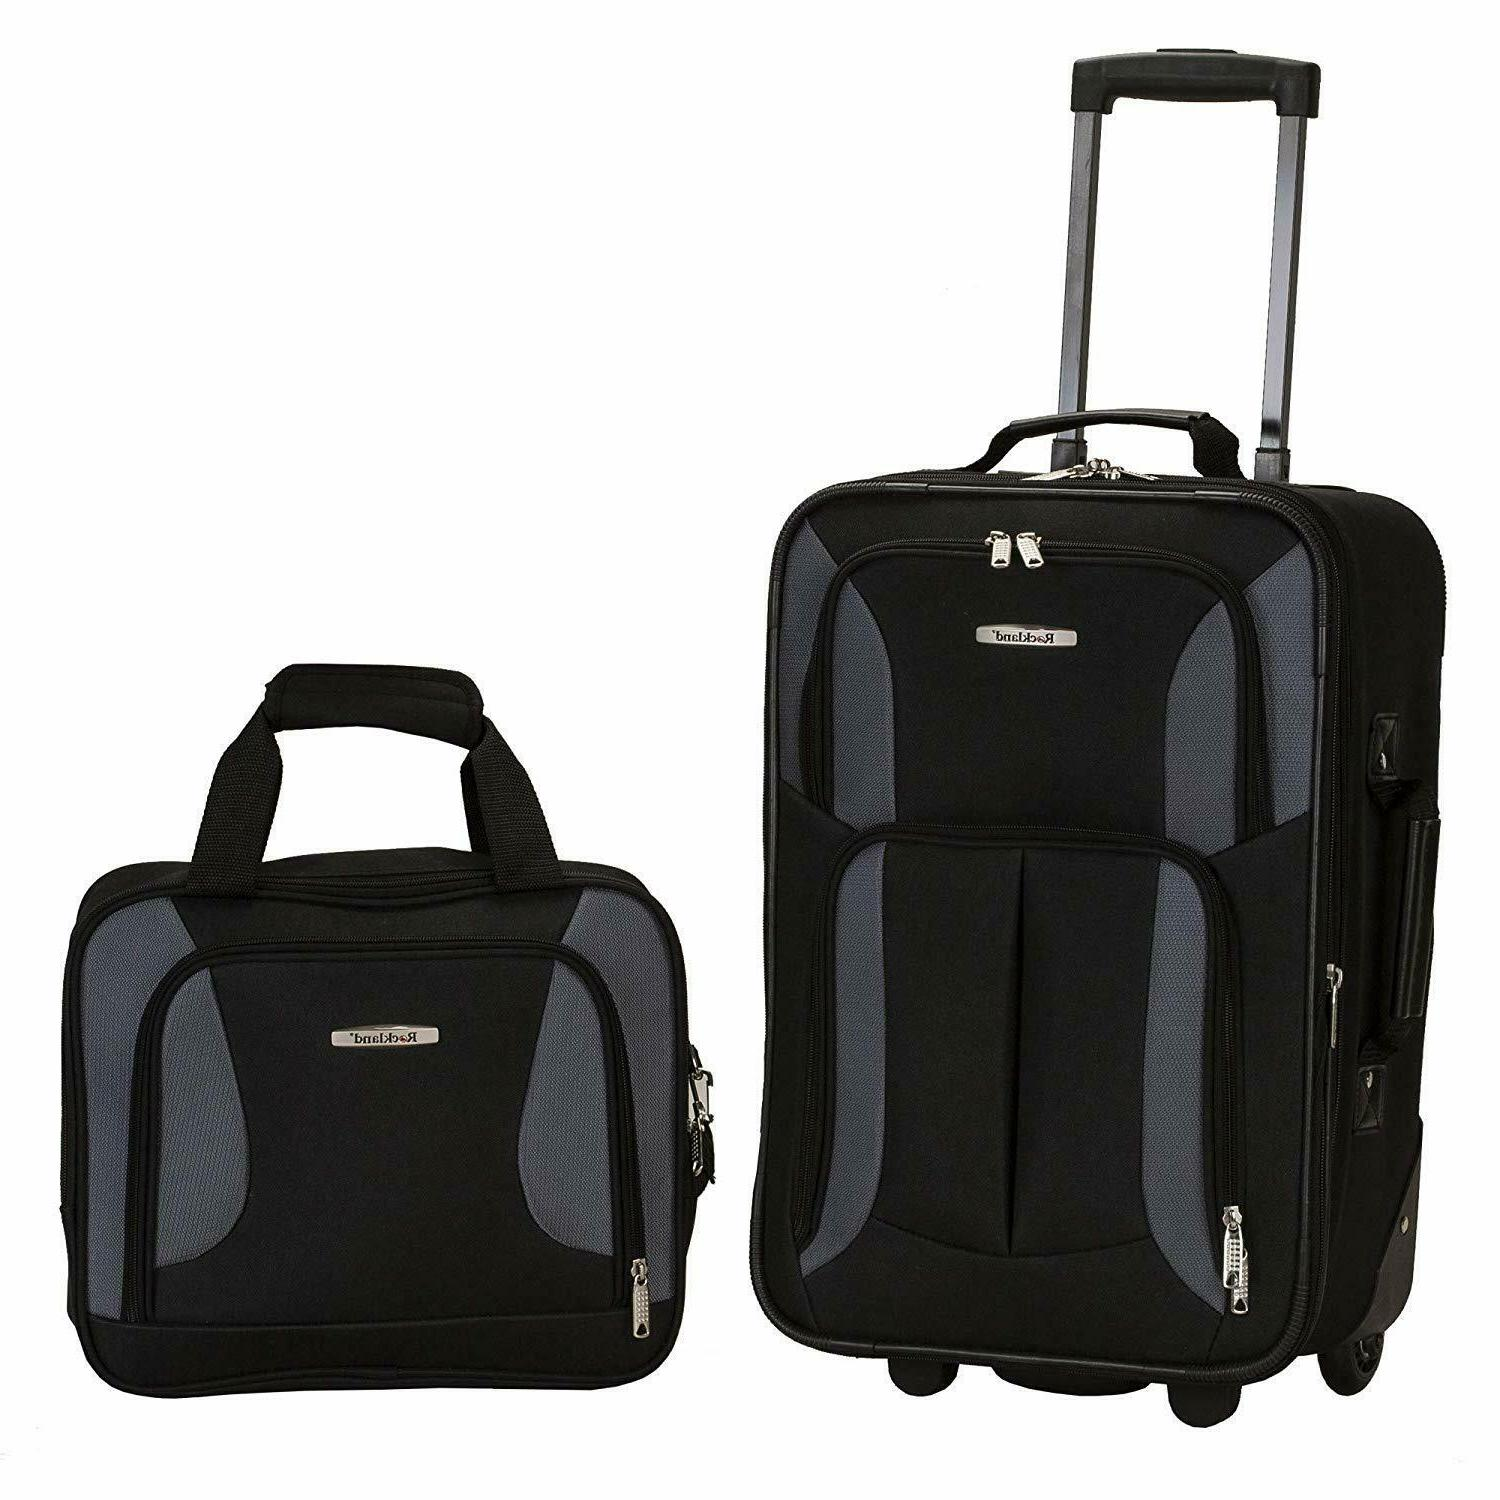 spinner luggage carry on set travel camping